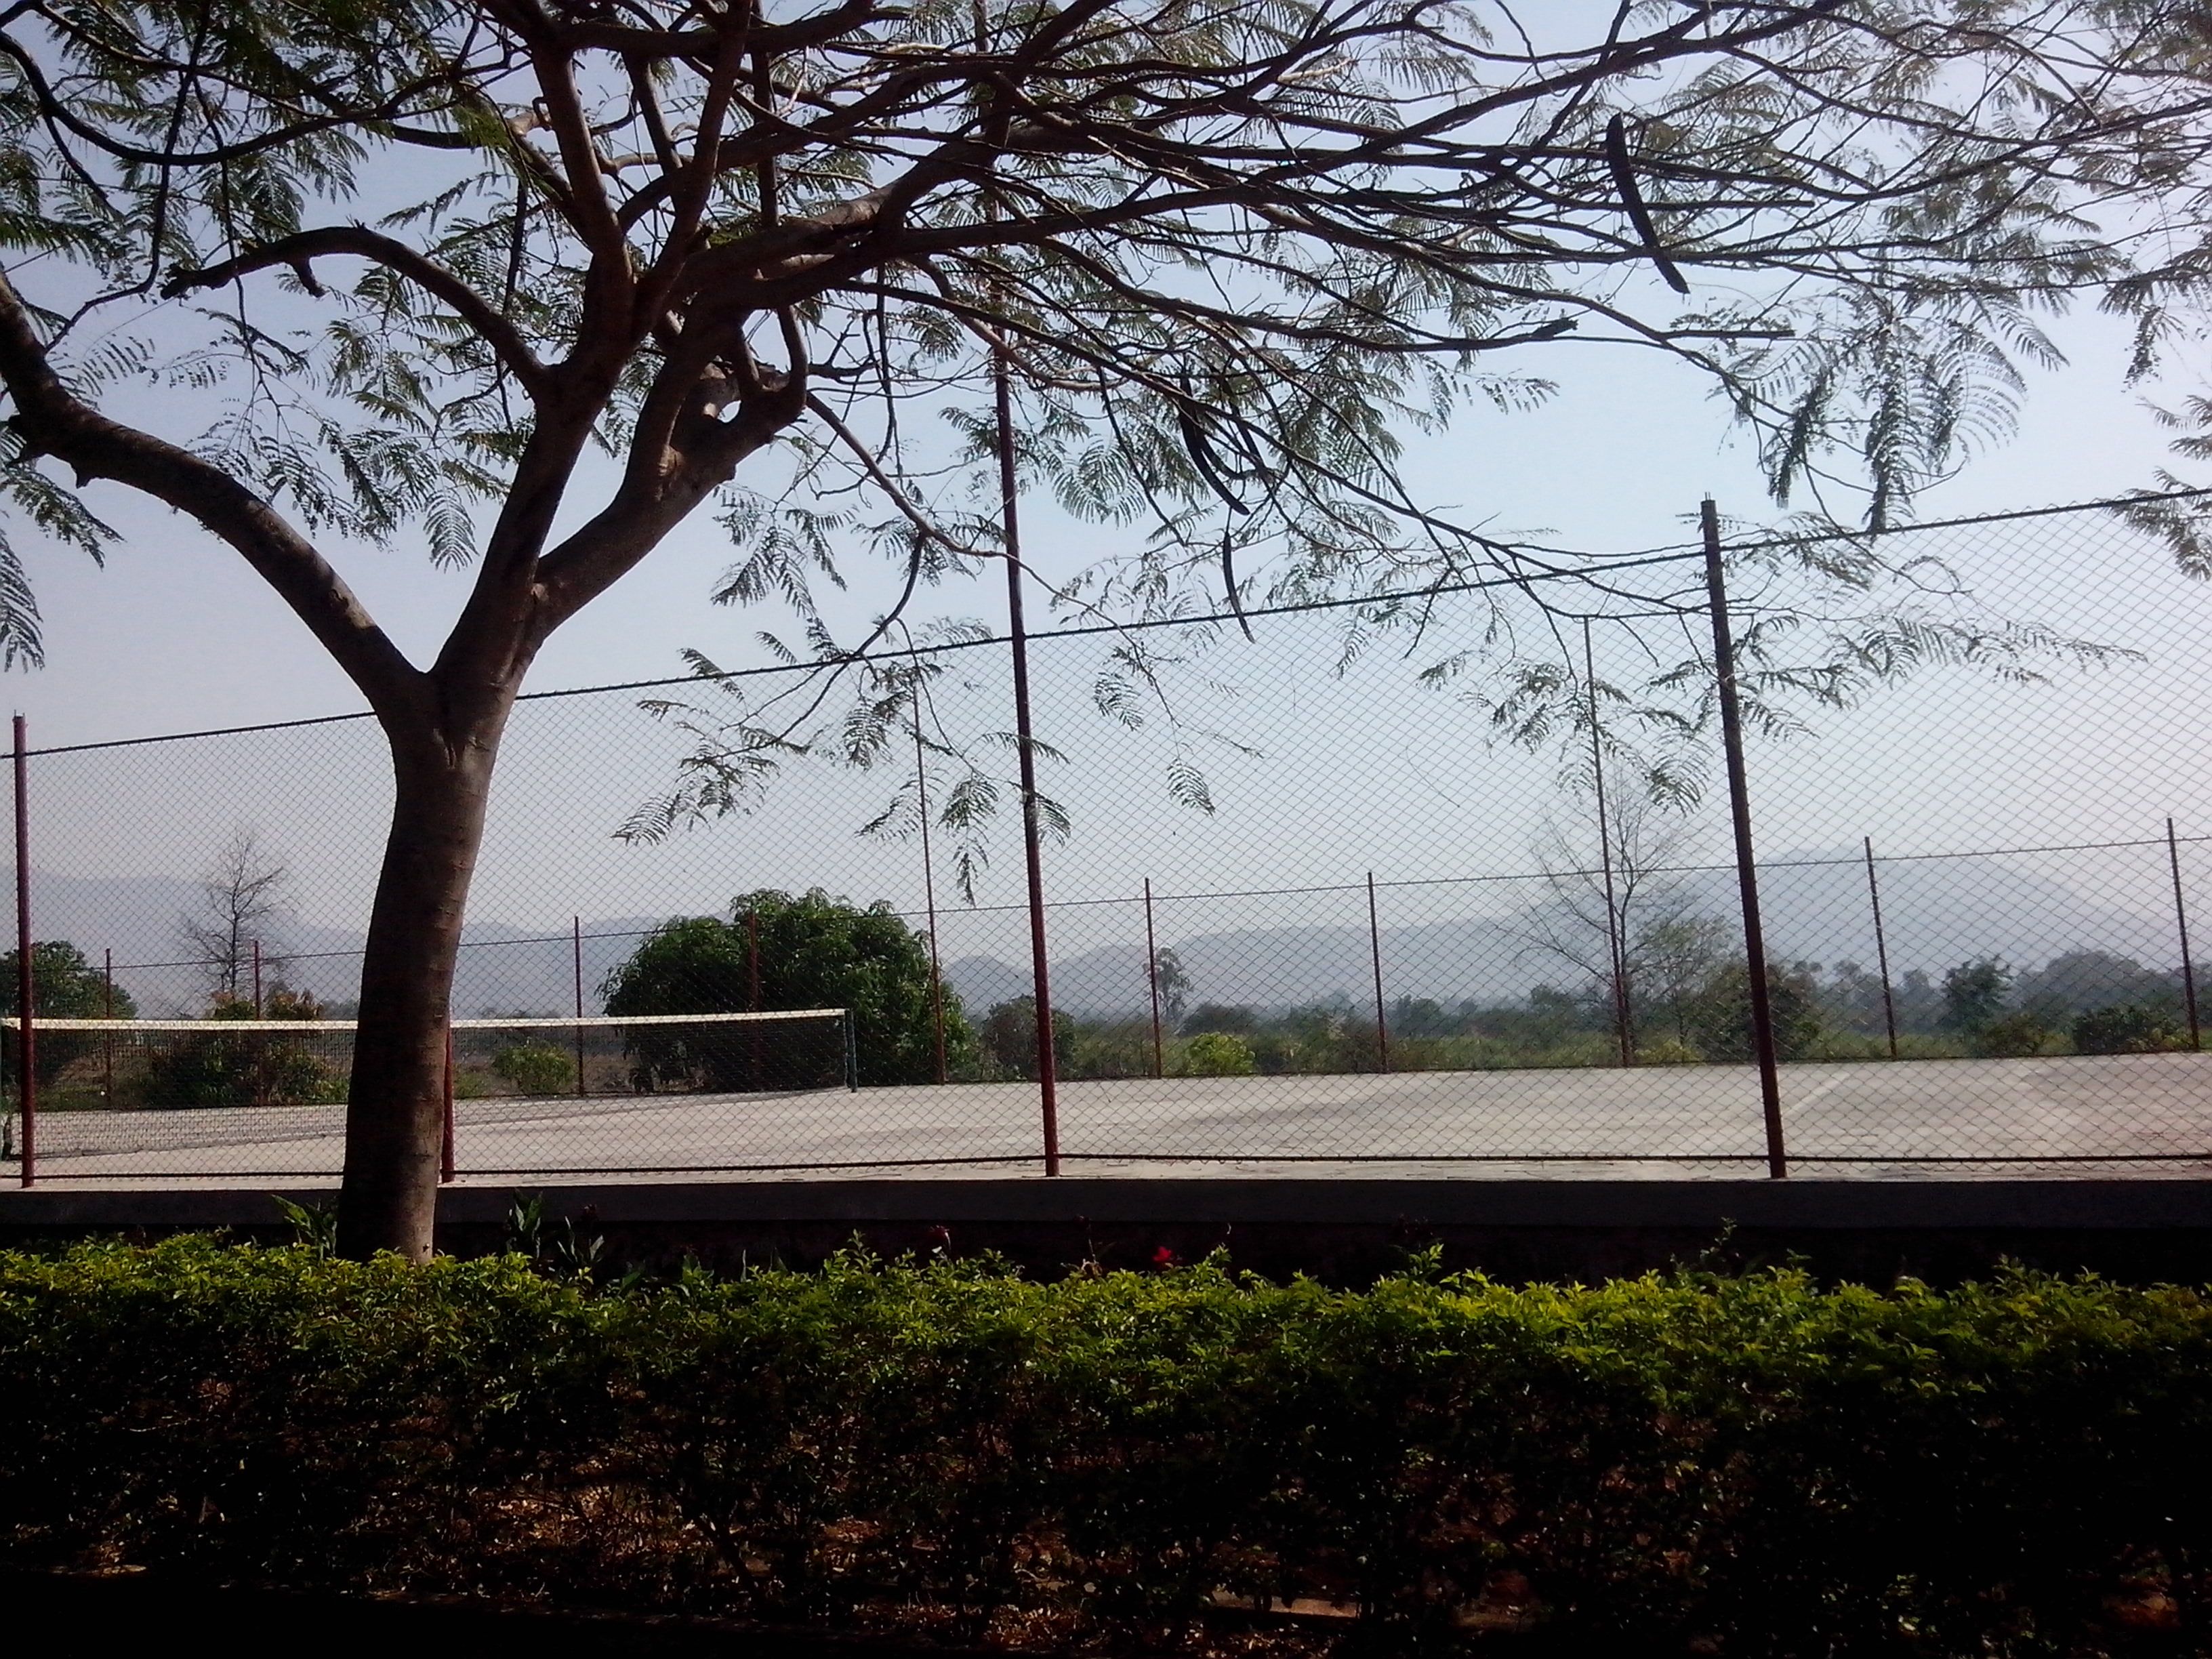 Tennis Court inside the Training Center